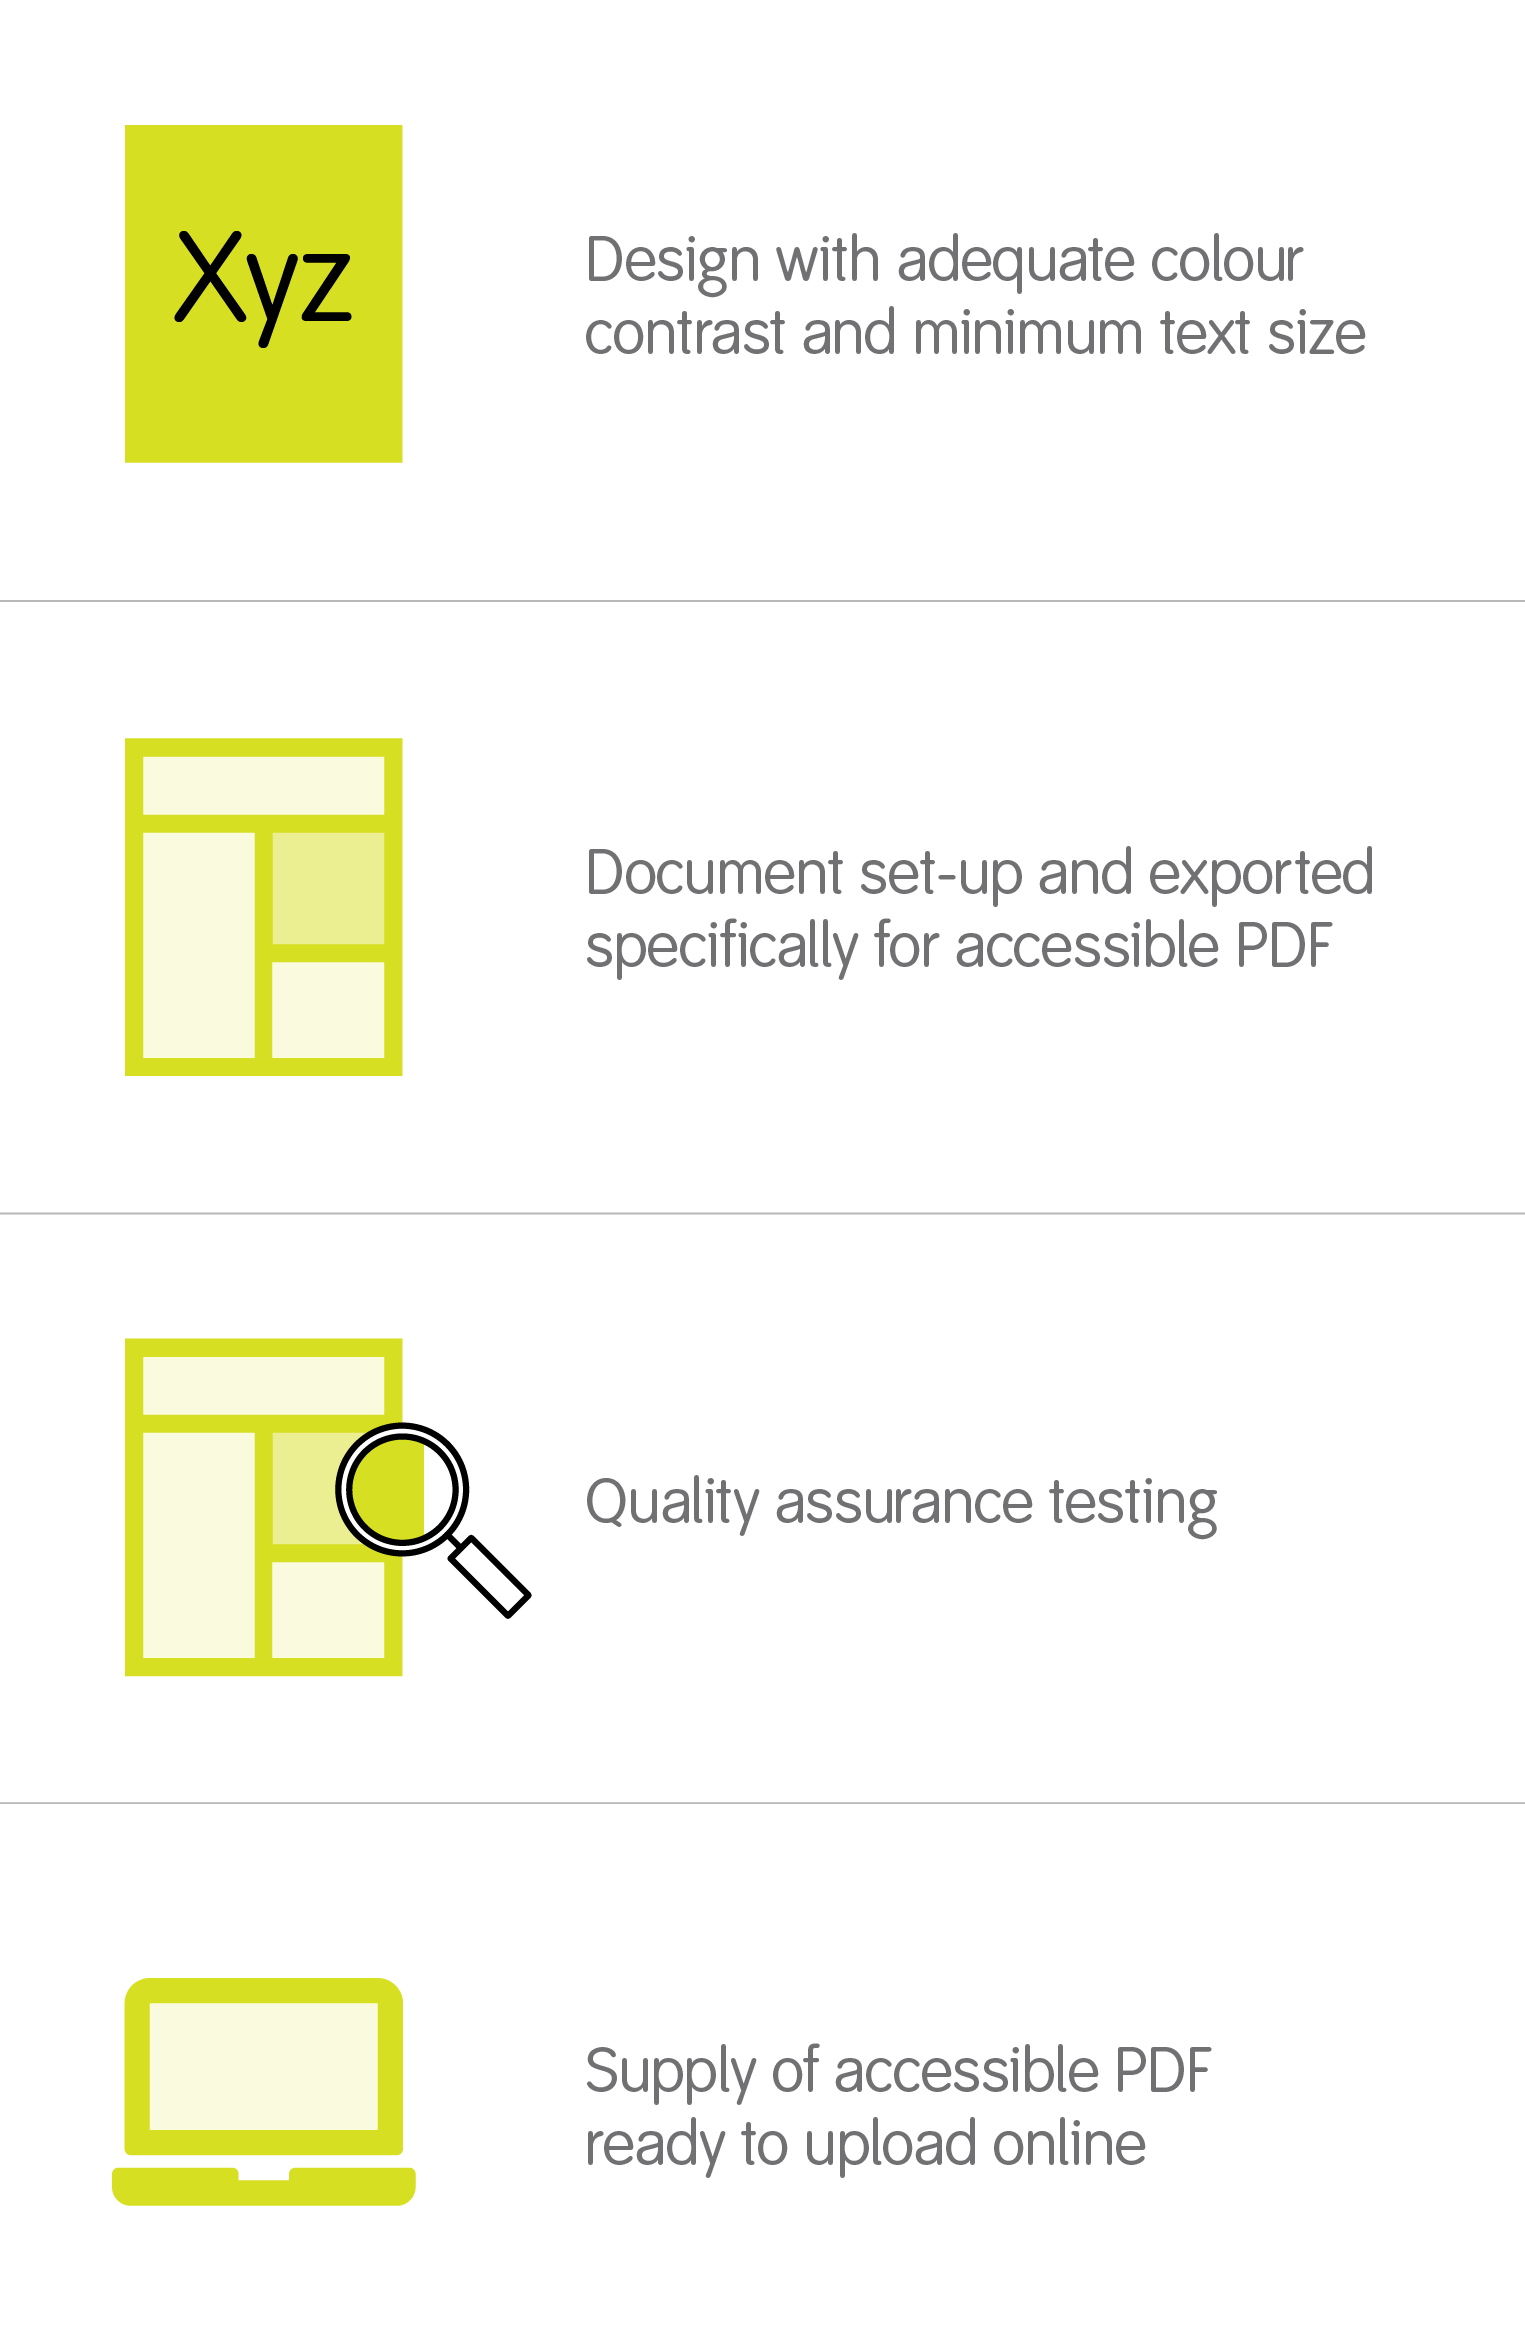 this is an image of four icons explaining how Twelve Creative goes about designing accessible PDFs